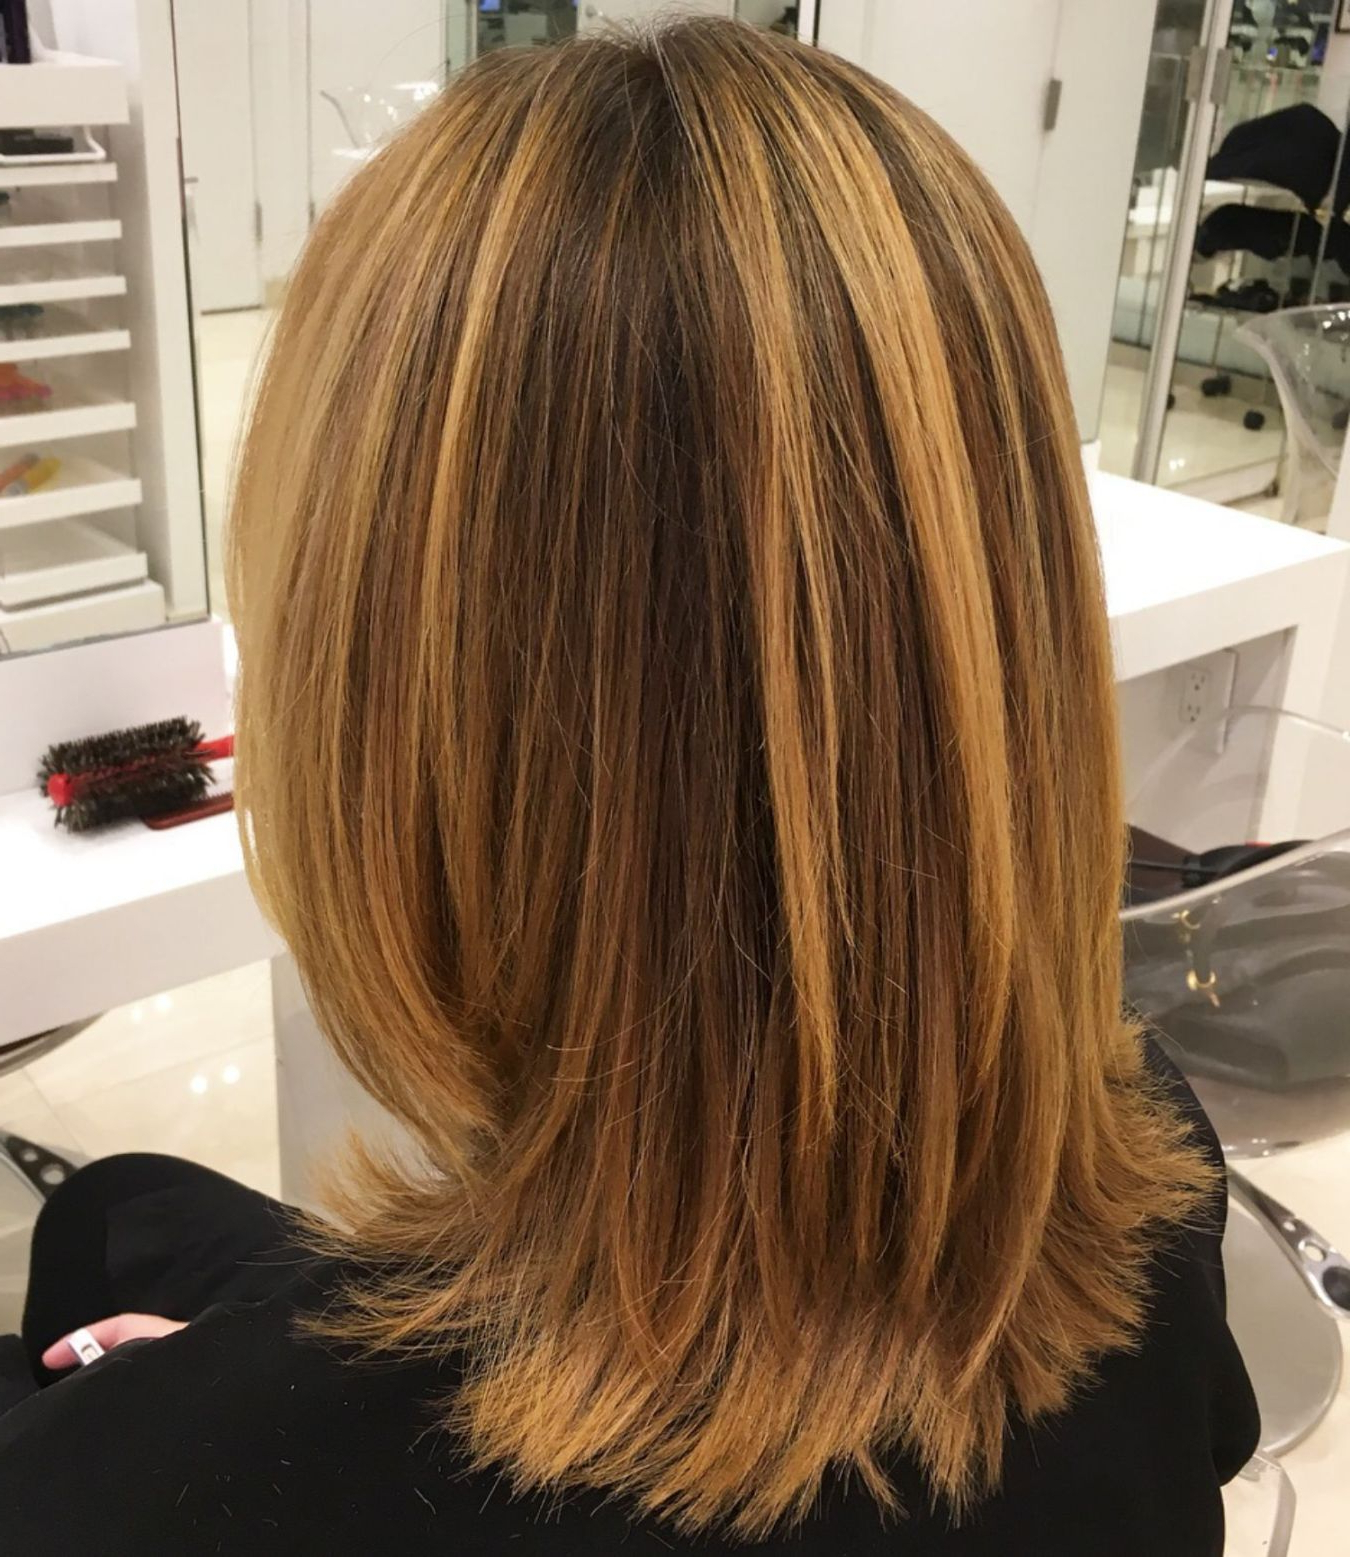 Hair Cut For Current Bob Haircuts With Symmetrical Swoopy Layers (View 7 of 20)